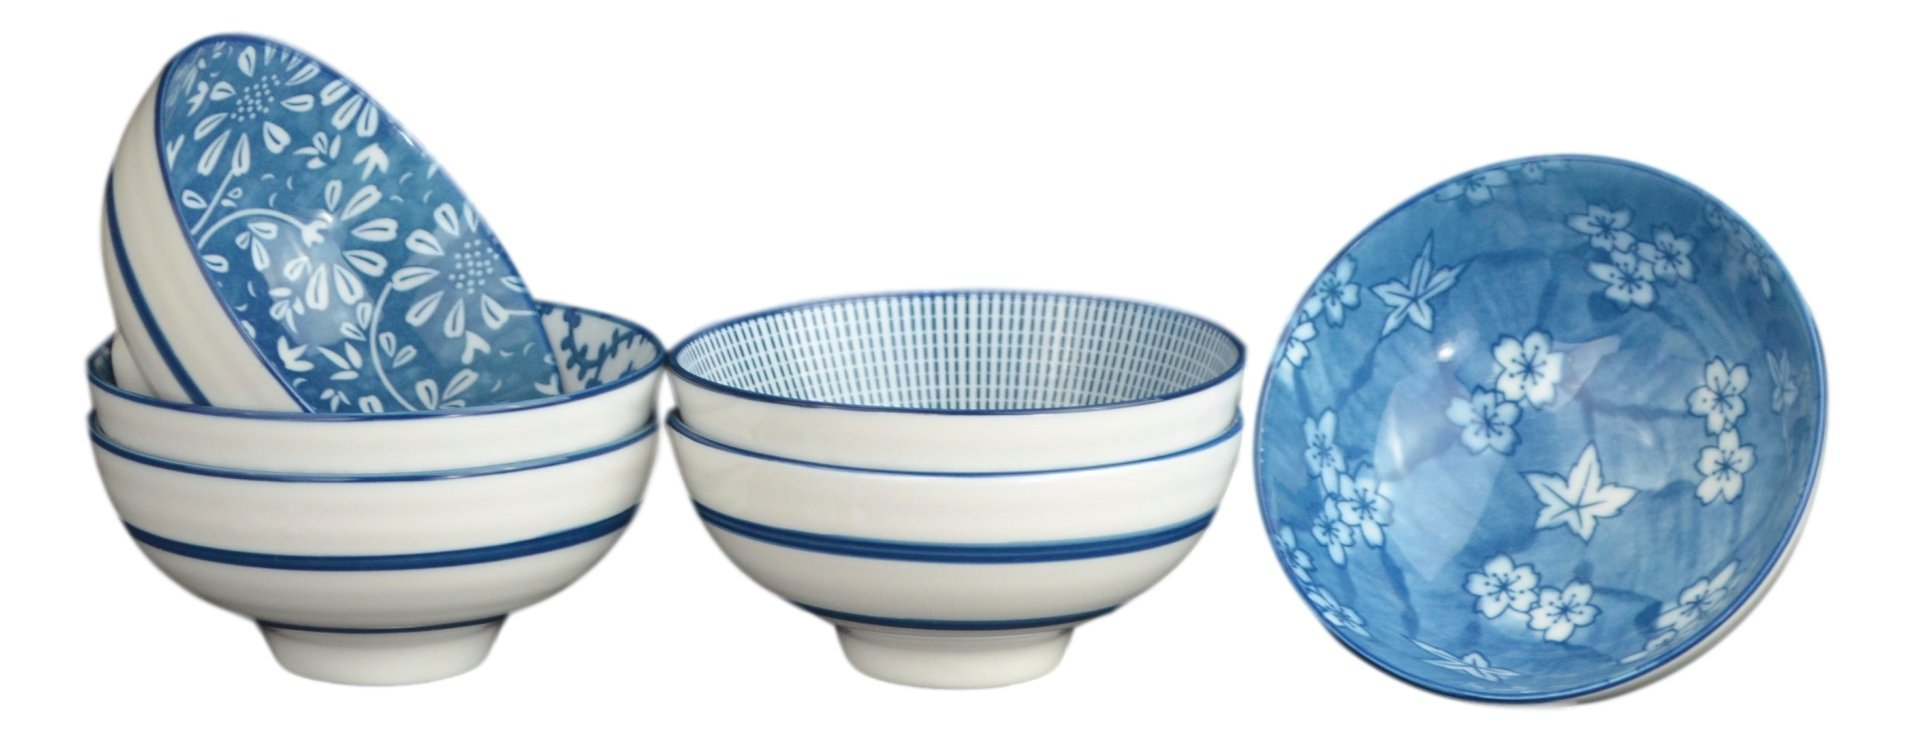 8 - Ounce Porcelain Bowl Sets with Free 6 Porcelain Spoons Set of 6 Blue and White (Blue7)